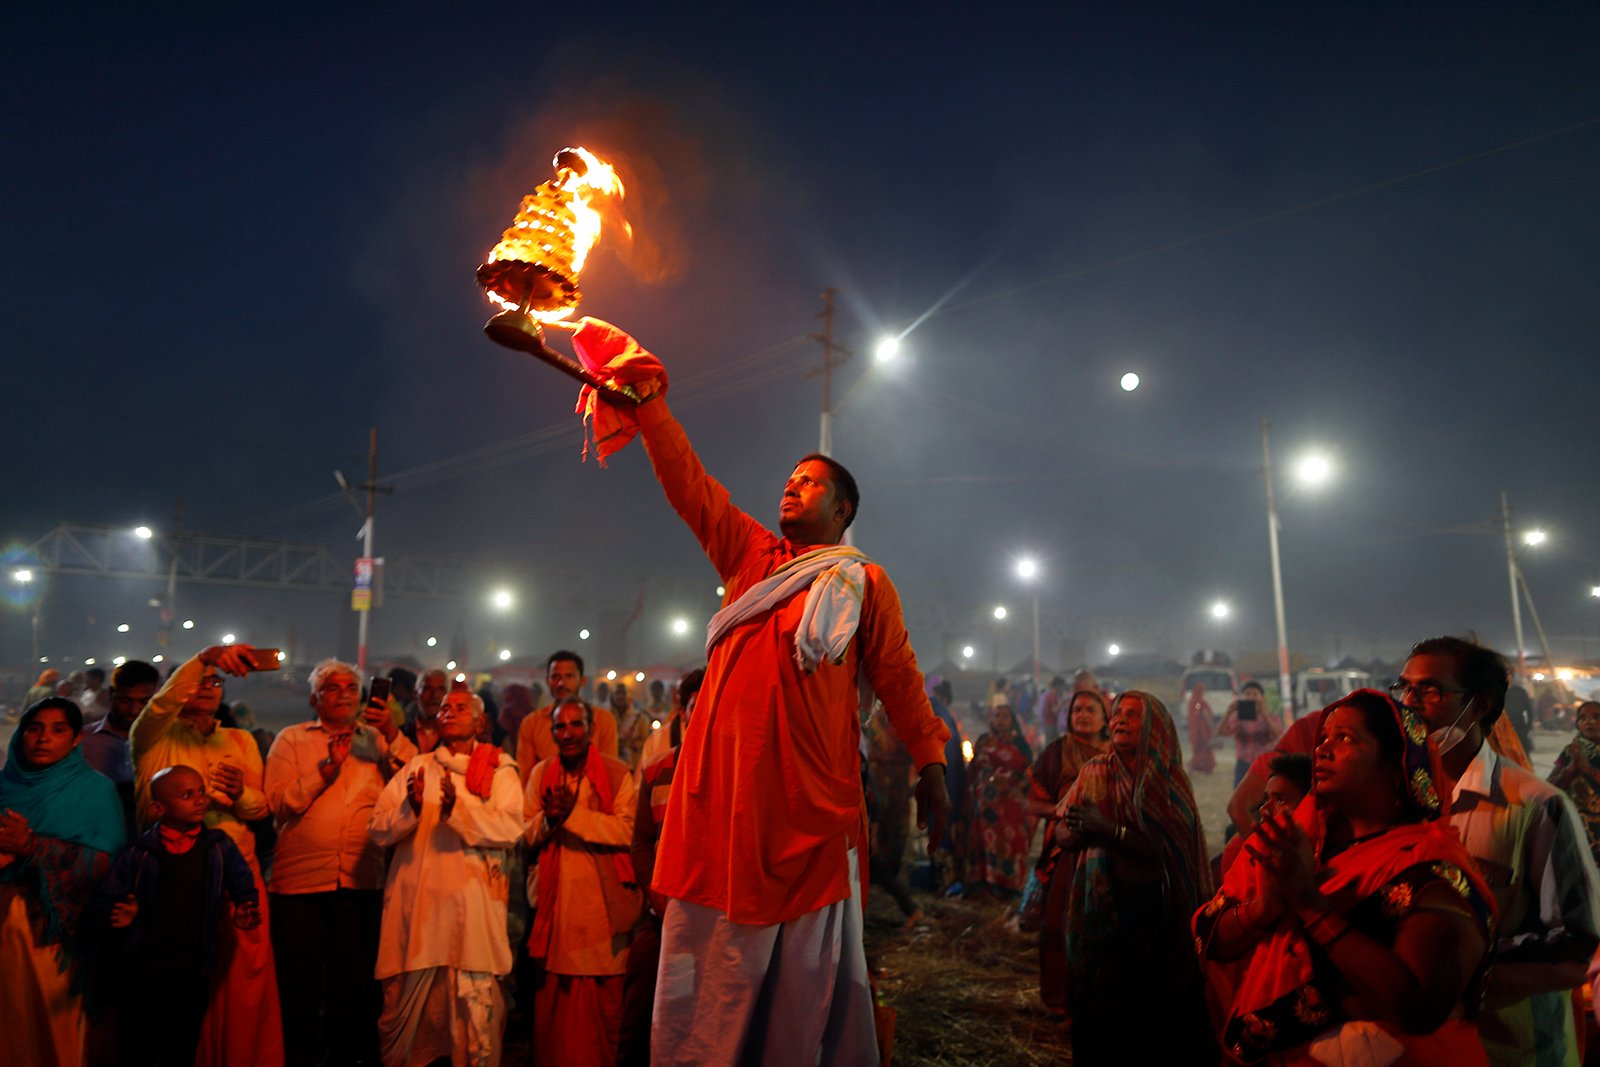 """A Hindu priest performs rituals at the Sangam, confluence of rivers Ganges, Yamuna, and mythical Saraswati, on the eve of the Maghi Purnima, or the full-moon day during the annual traditional fair of """"Magh Mela"""" in Prayagraj, India, Friday, Feb. 26, 2021. Hundreds of thousands of devout Hindus are expected to take holy dips at the confluence during the astronomically auspicious period of over 45 days celebrated as Magh Mela. (AP Photo/Rajesh Kumar Singh)"""